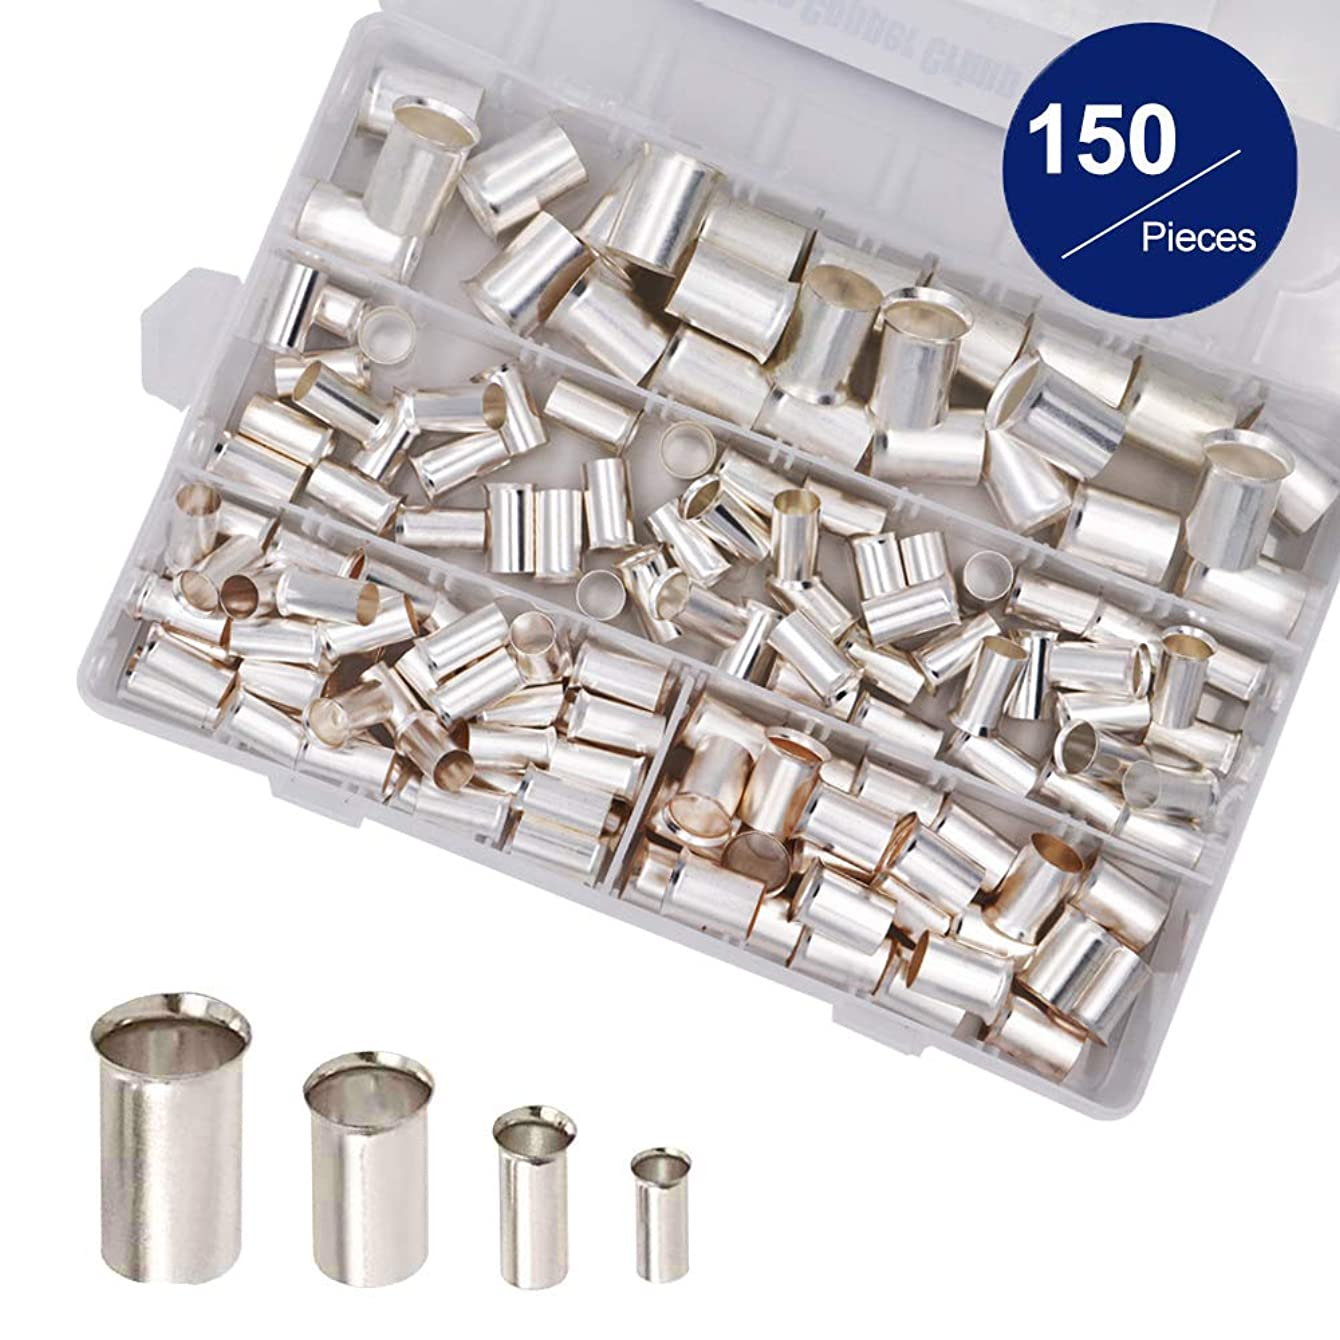 150 Pcs Wire Copper Crimp Connector, 4 Types(AWG 4,2,1,2/0) Non Insulated Cable Housing Wire Ferrules Pin Cord End Terminal Assortment Kit(Pack of 150)